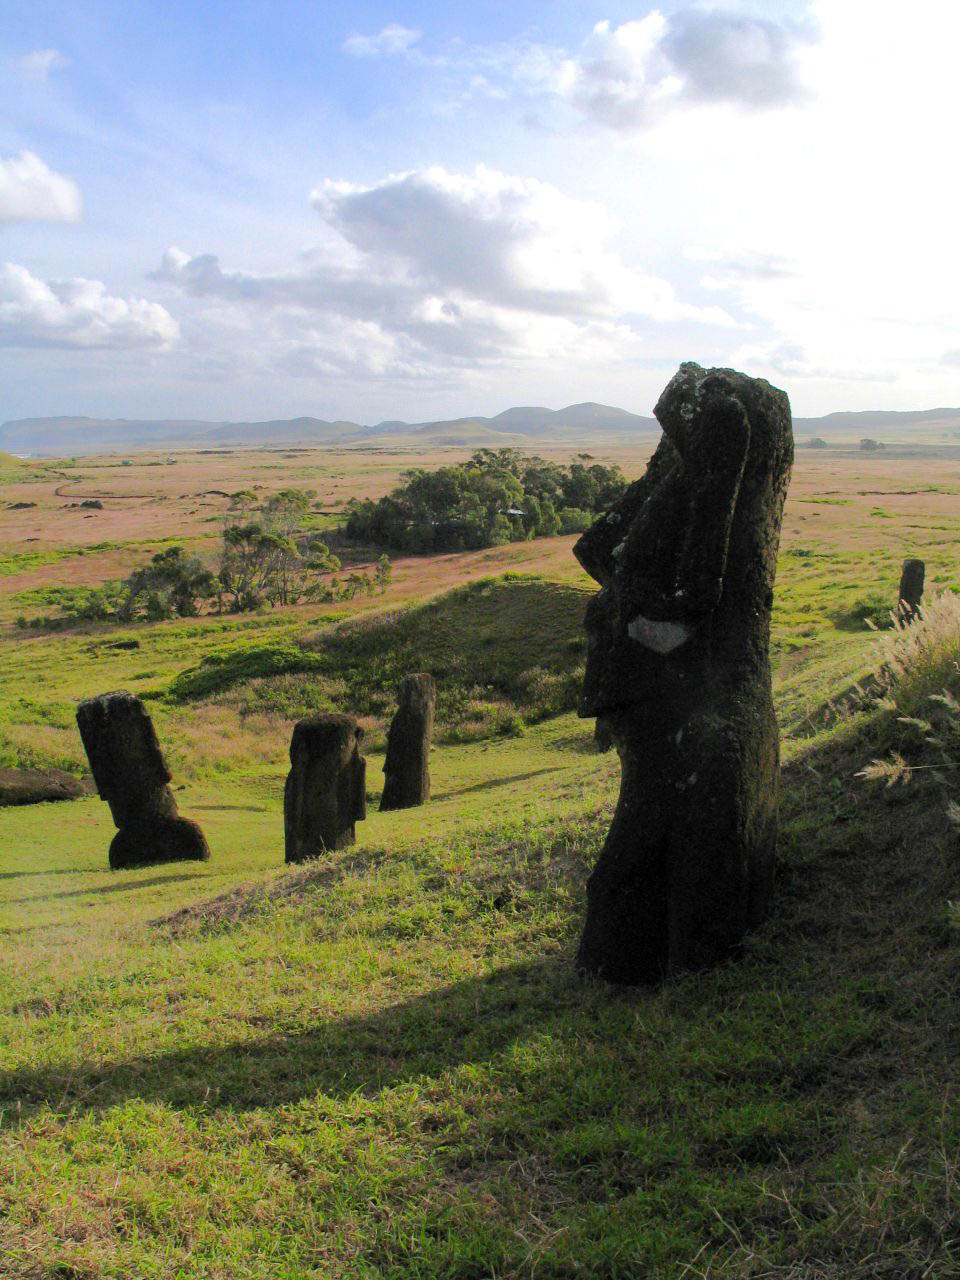 rapa nui8 Gigantic Moai Statues and Heads in Polynesian Easter Island